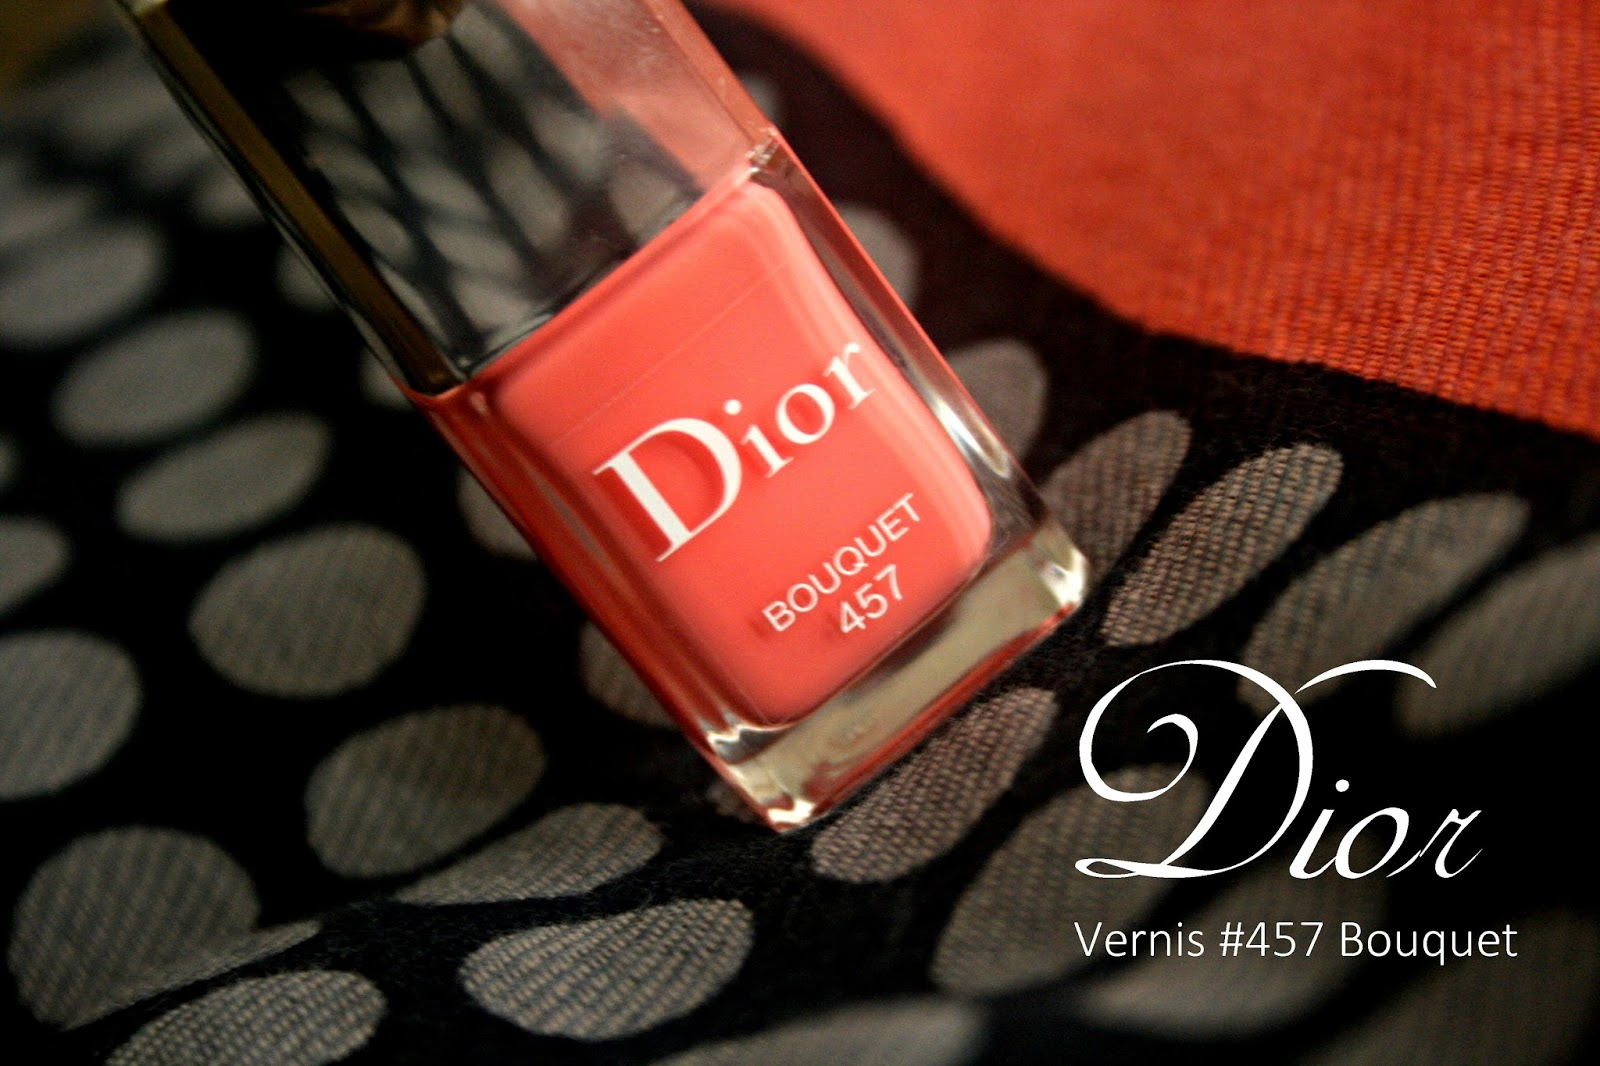 DIOR Vernis #457 Bouquet Trianon Spring 2014 Edition Review, Photos & Swatches